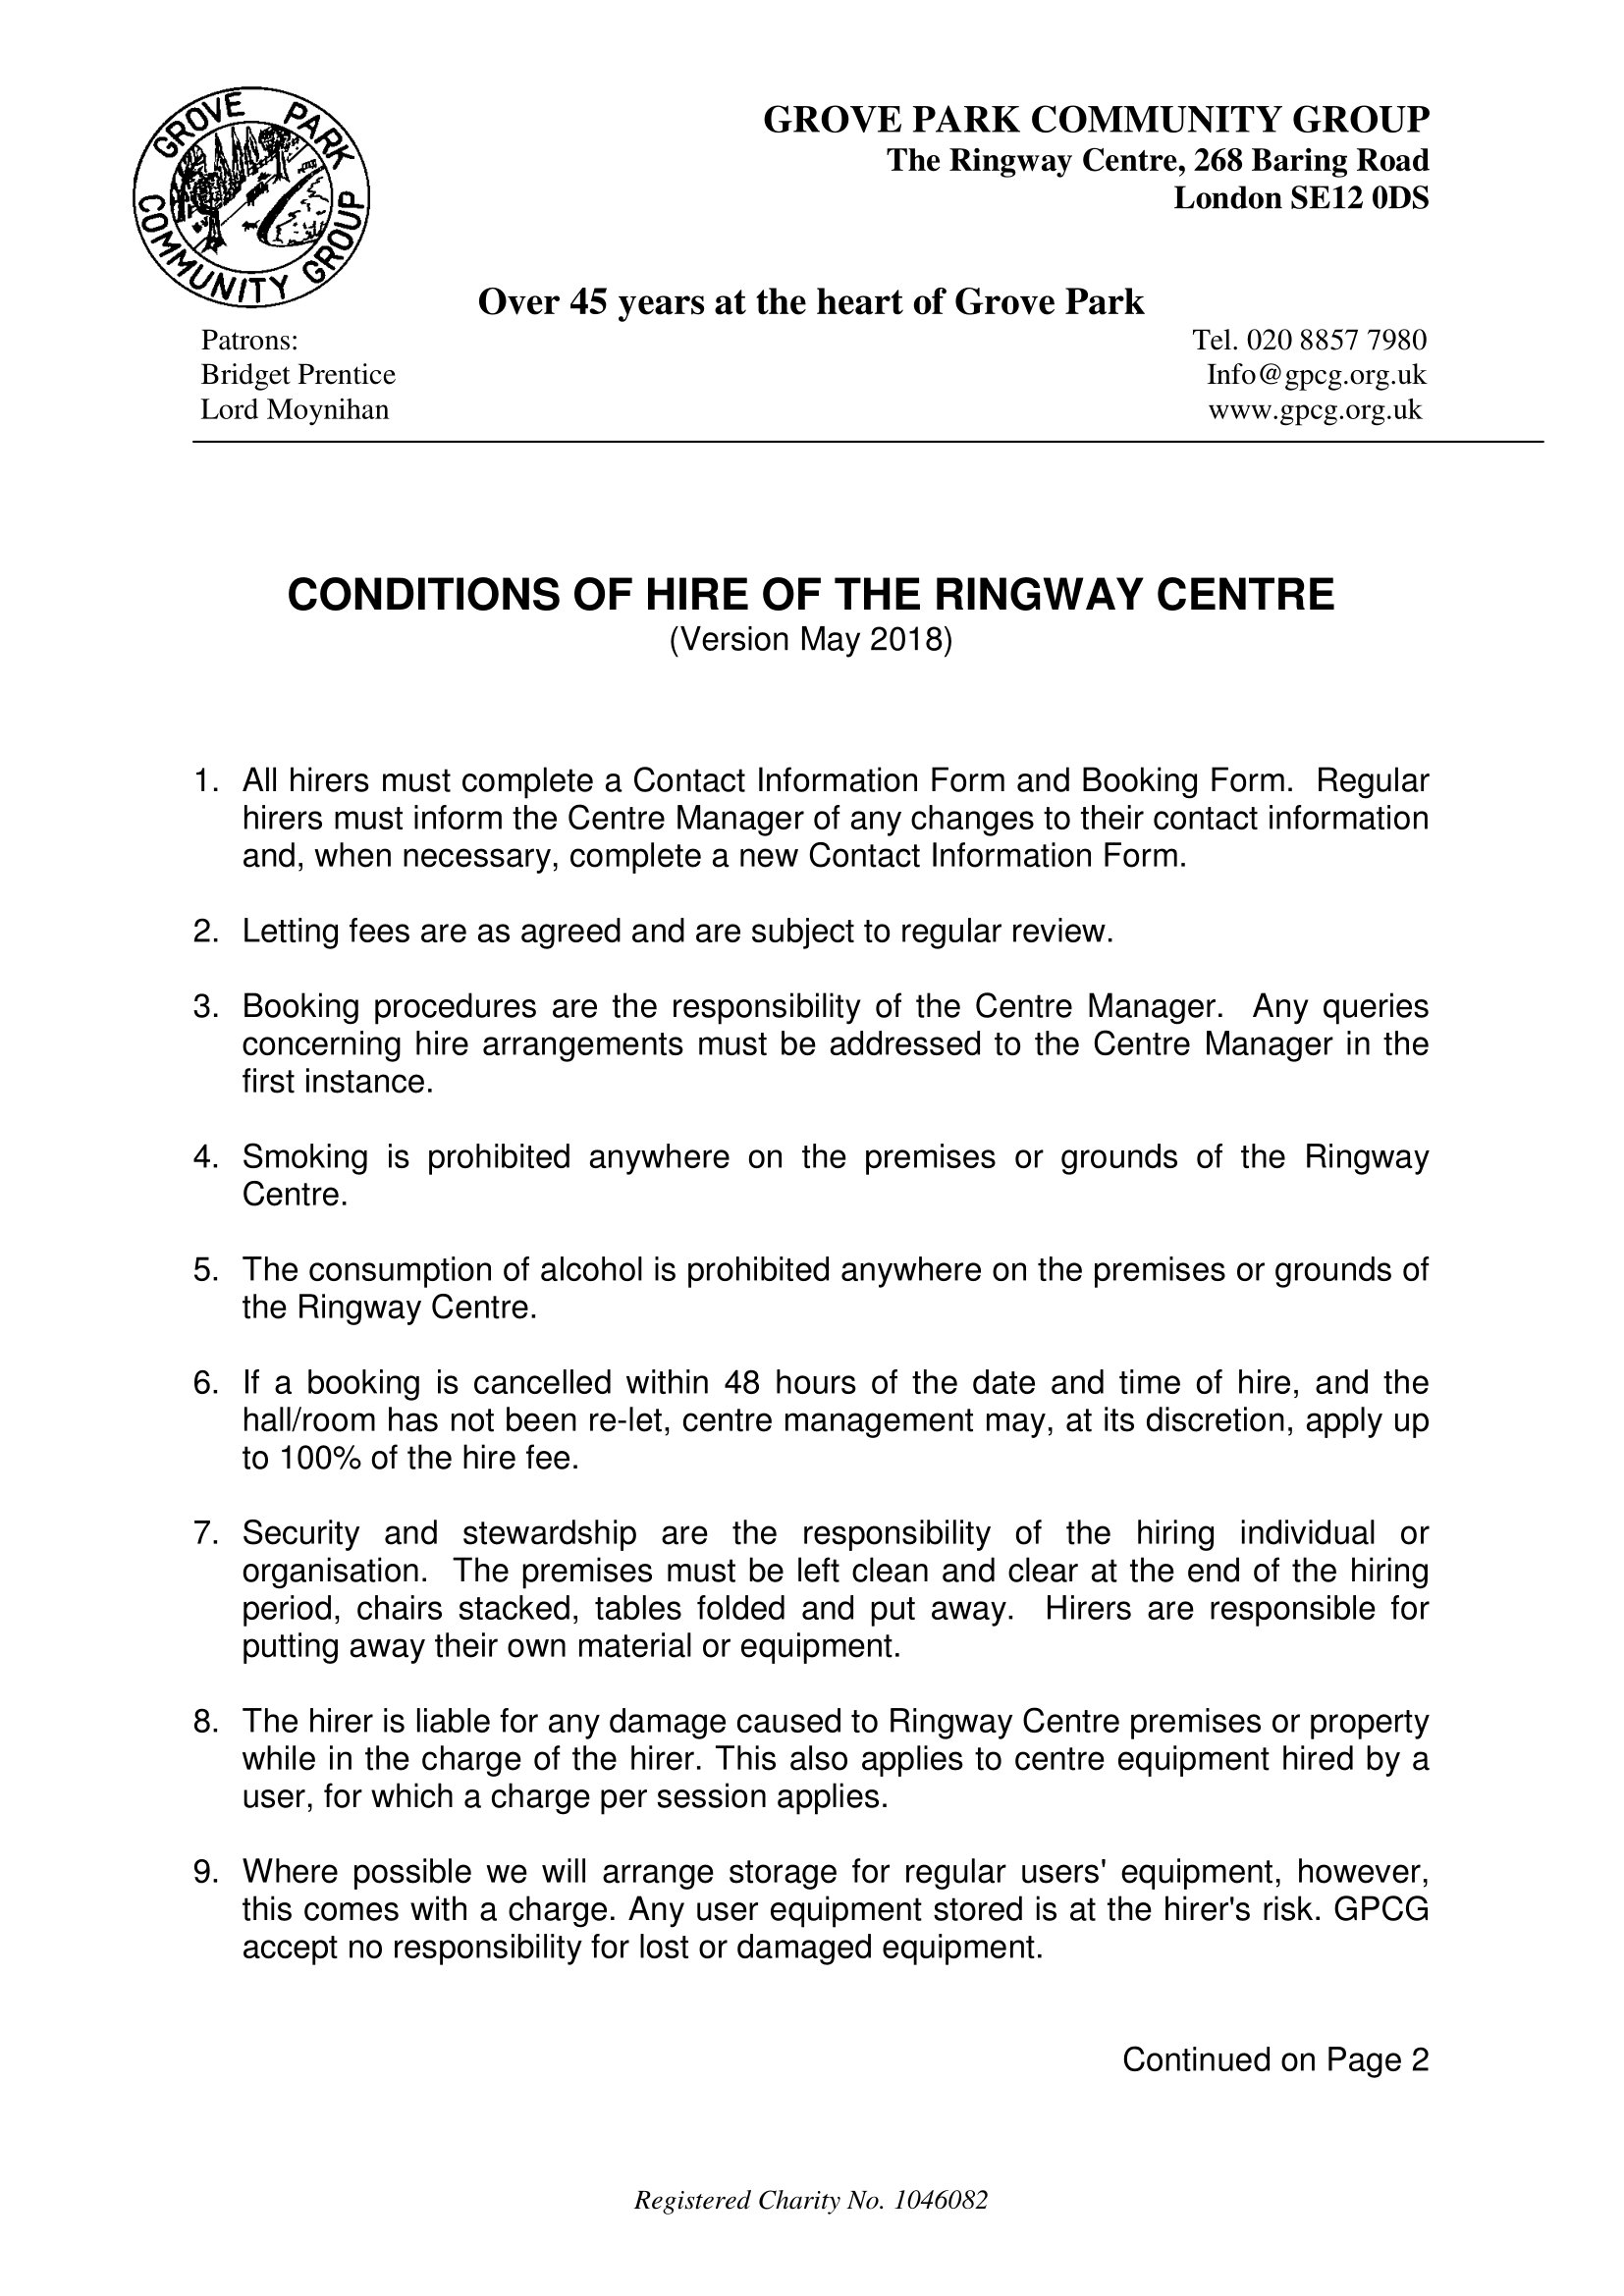 Hire Conditions  May 2018-1.png